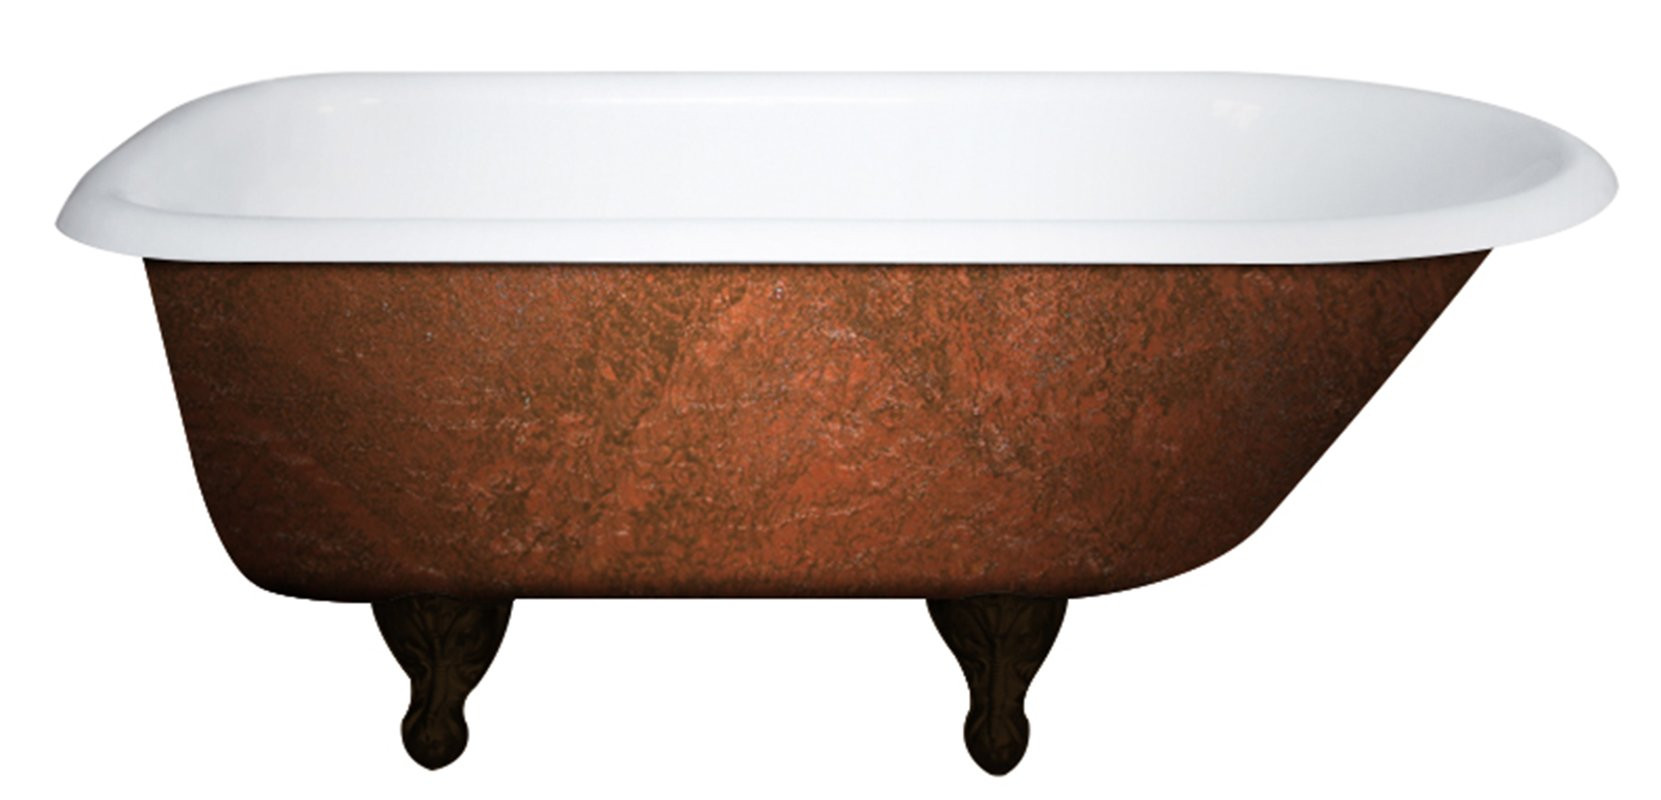 Cambridge RR61-NH-ORB-CB Cast Iron Clawfoot Bathtub w/ No Faucet Drillings